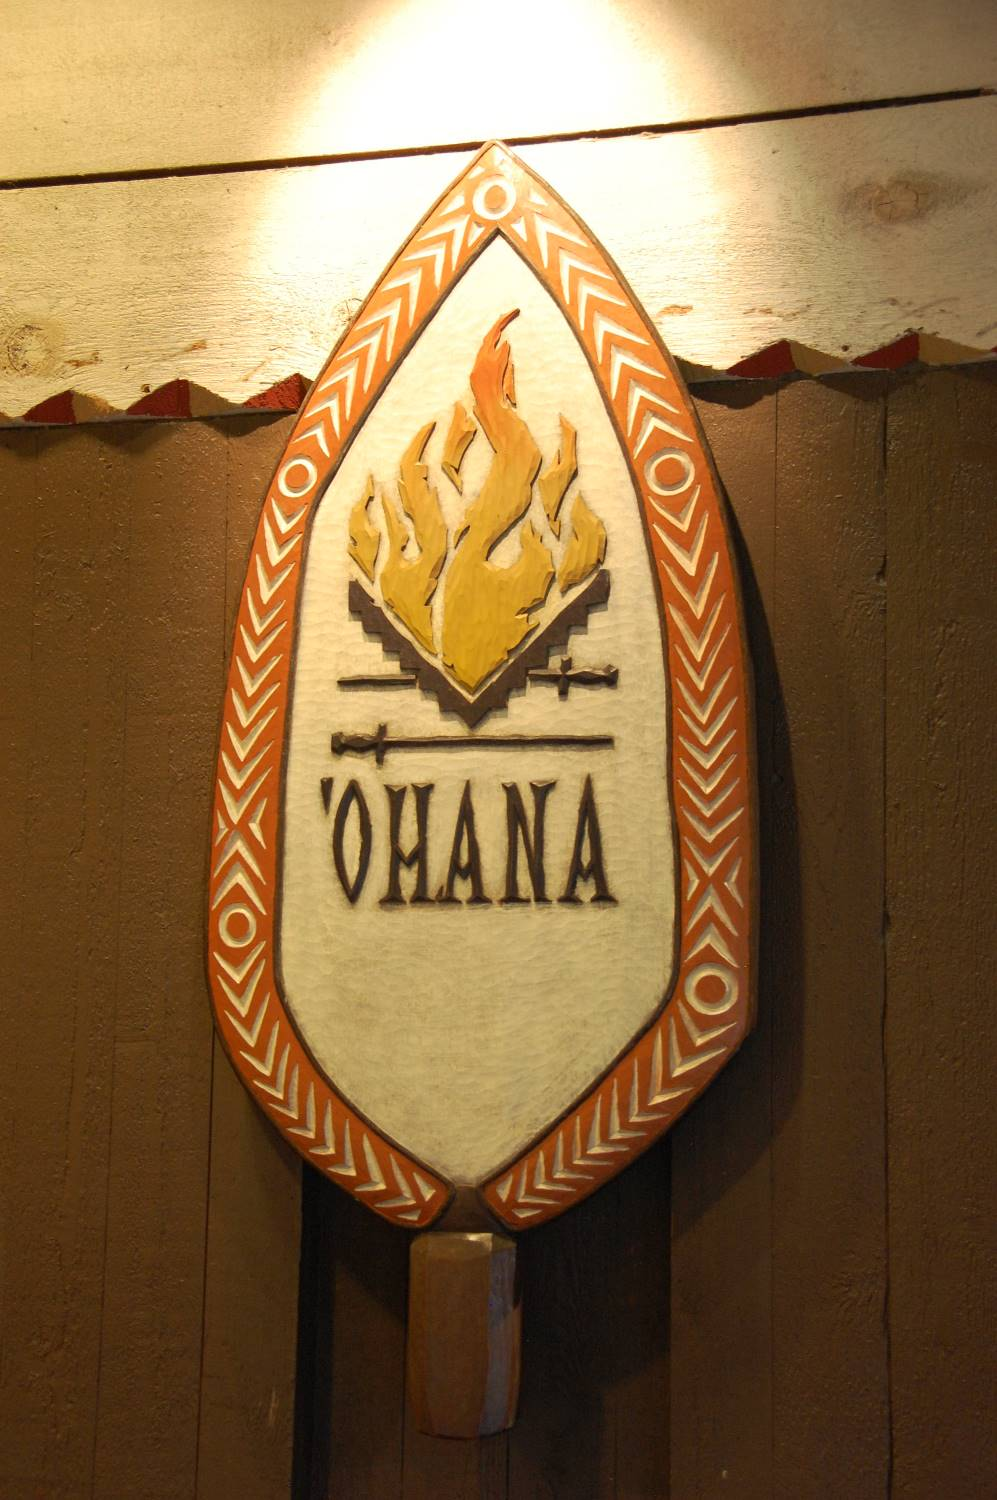 O'hana, a very popular restaurant serving breakfast & dinner at Disney's Polynesian Village Resort.  Breakfast includes Disney characters.